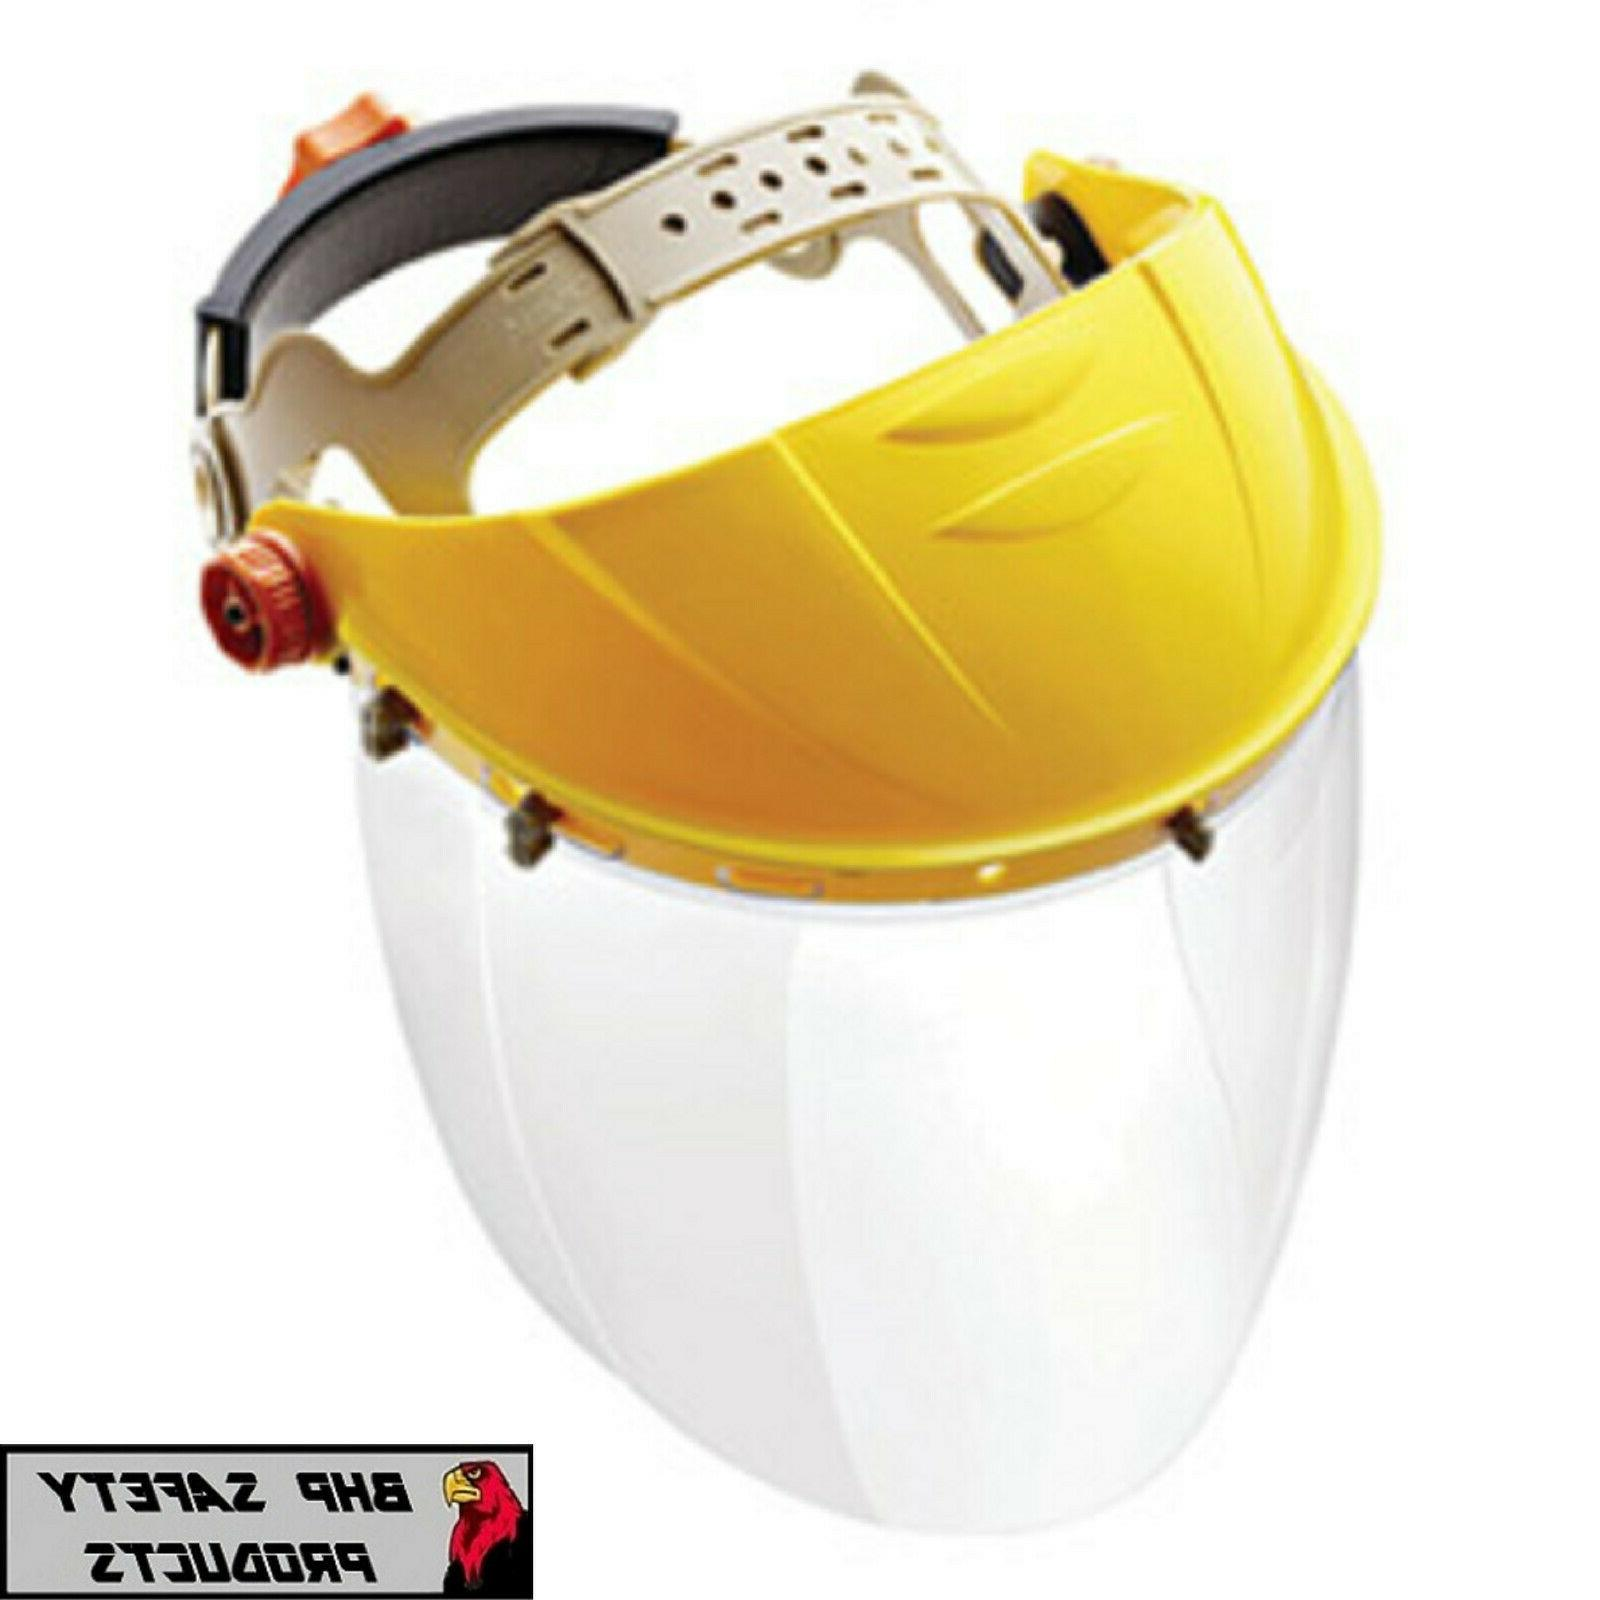 Full Safety Shield Tool Clear Painting Grinding